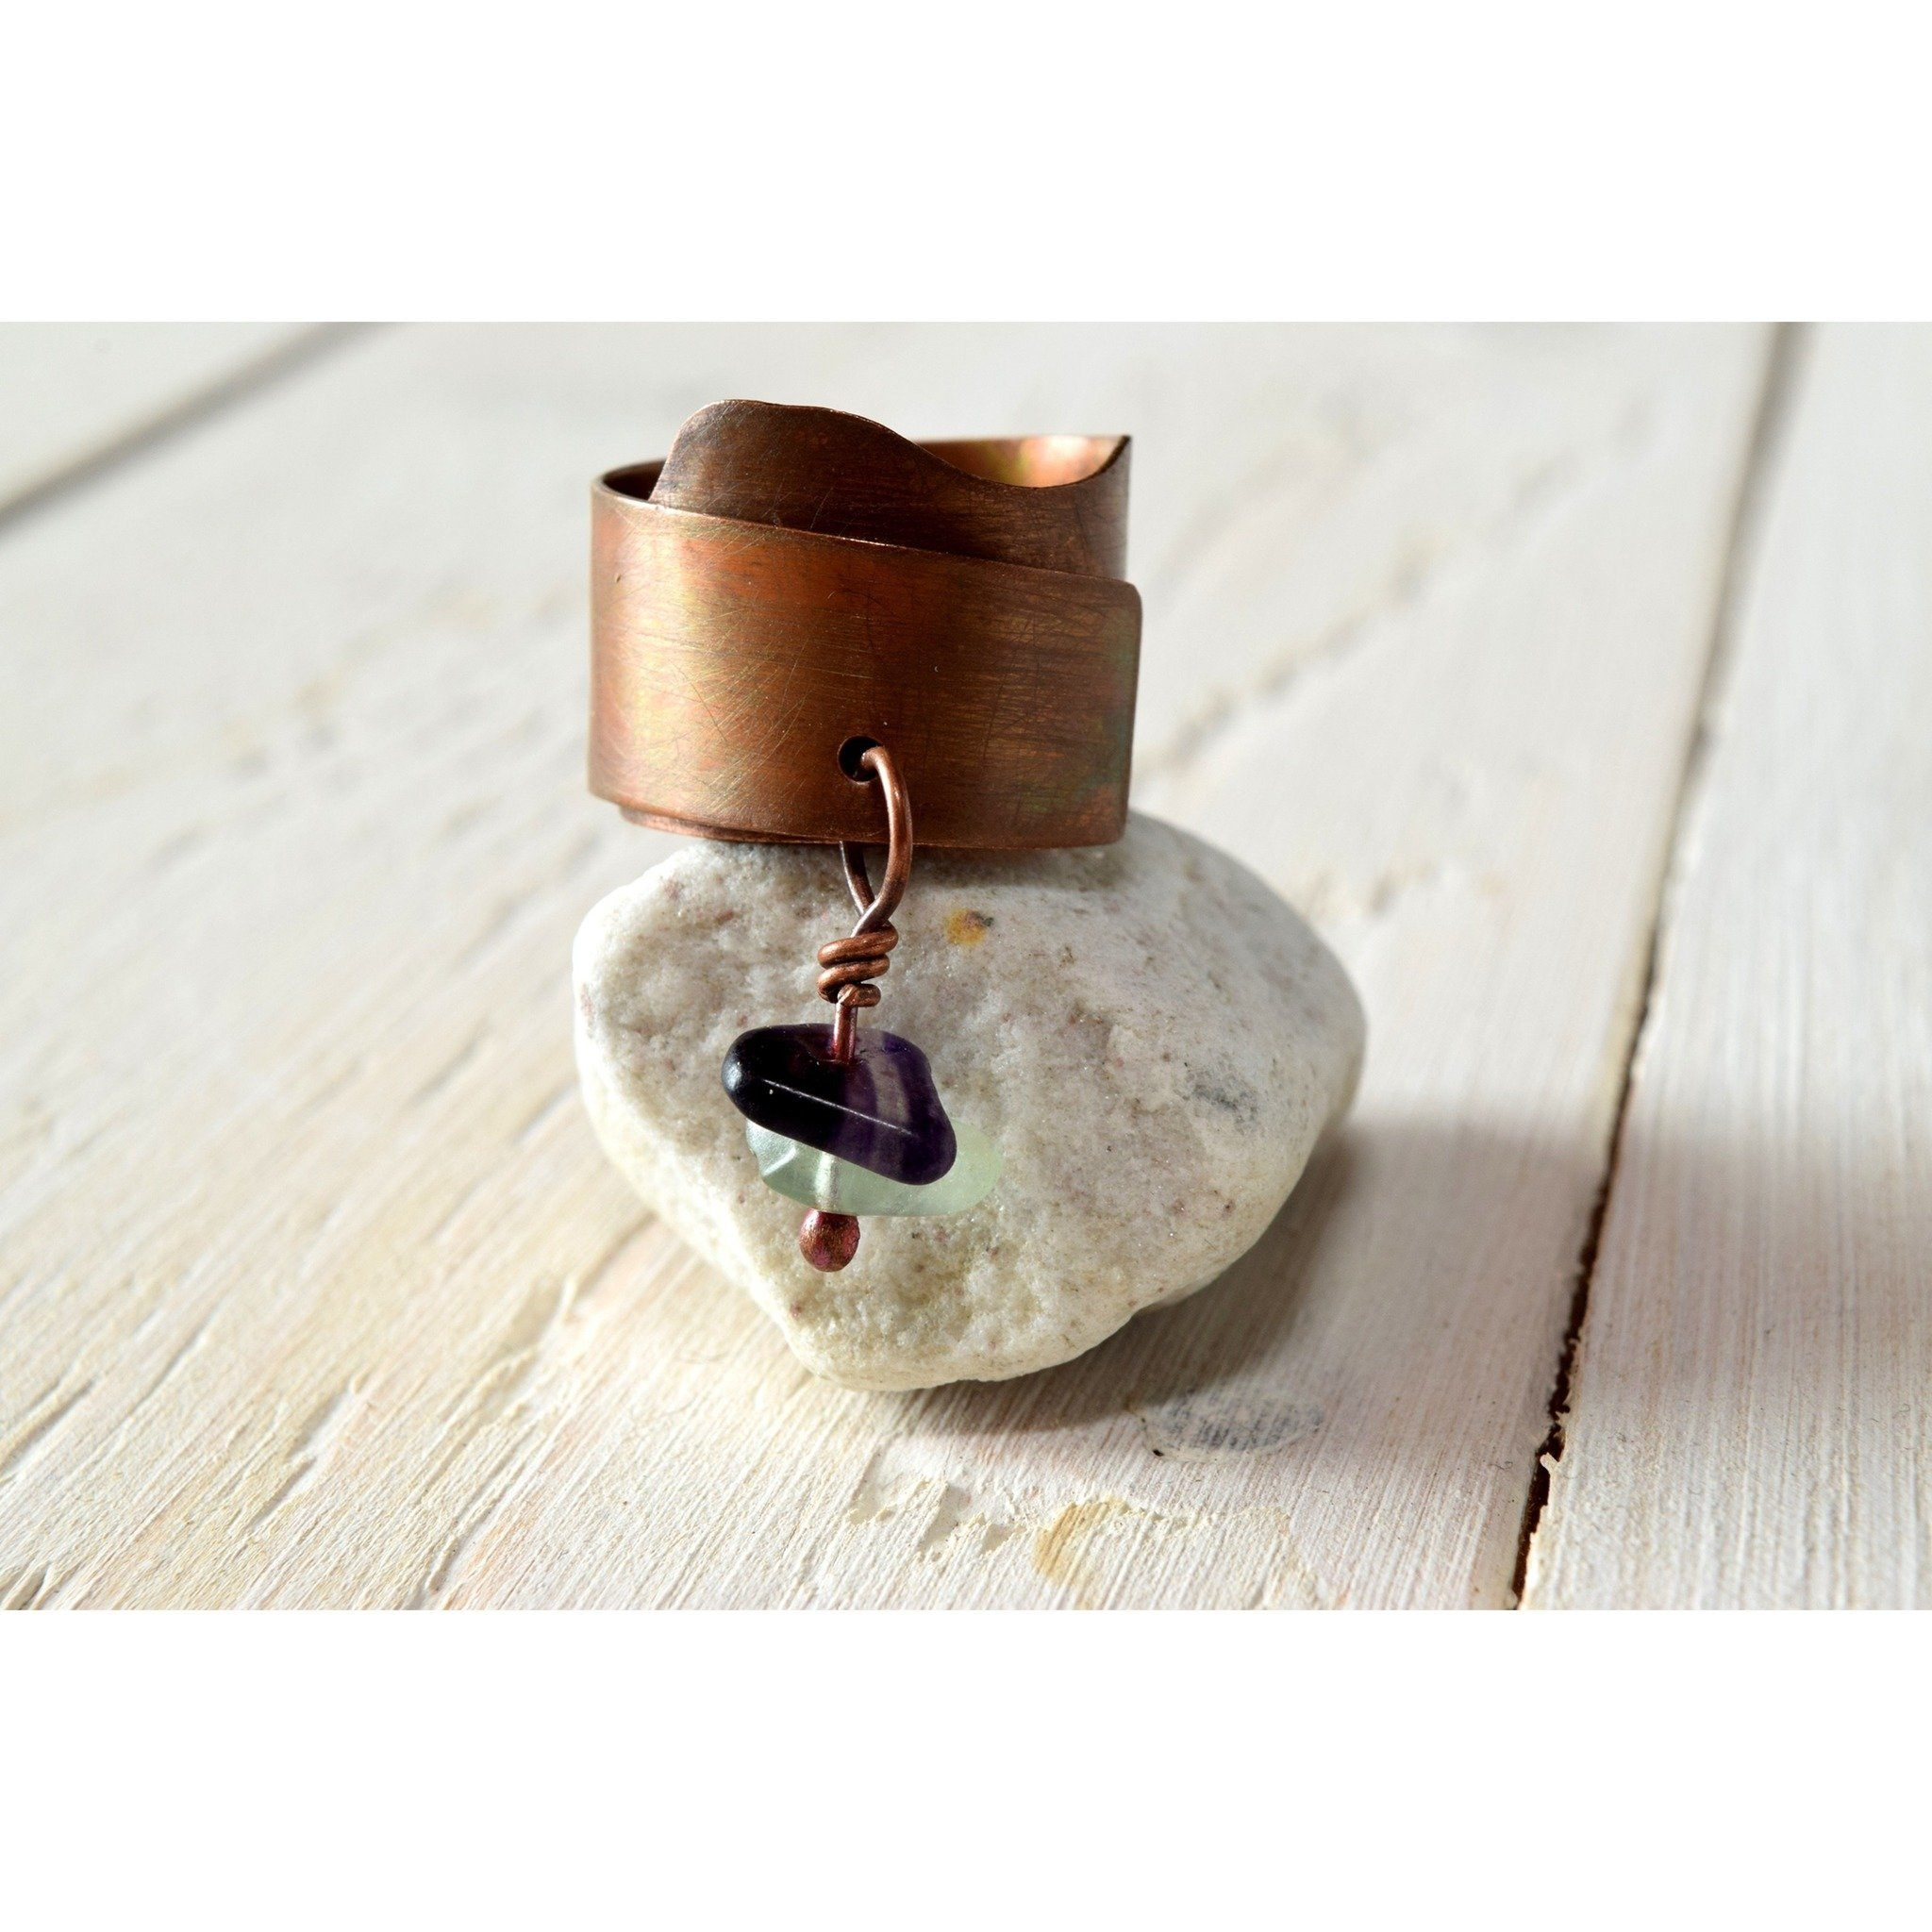 piece stone natural yet reminiscent pin the fluorite raw true twinned rings english of slight present mighty age naturally this bronze small is